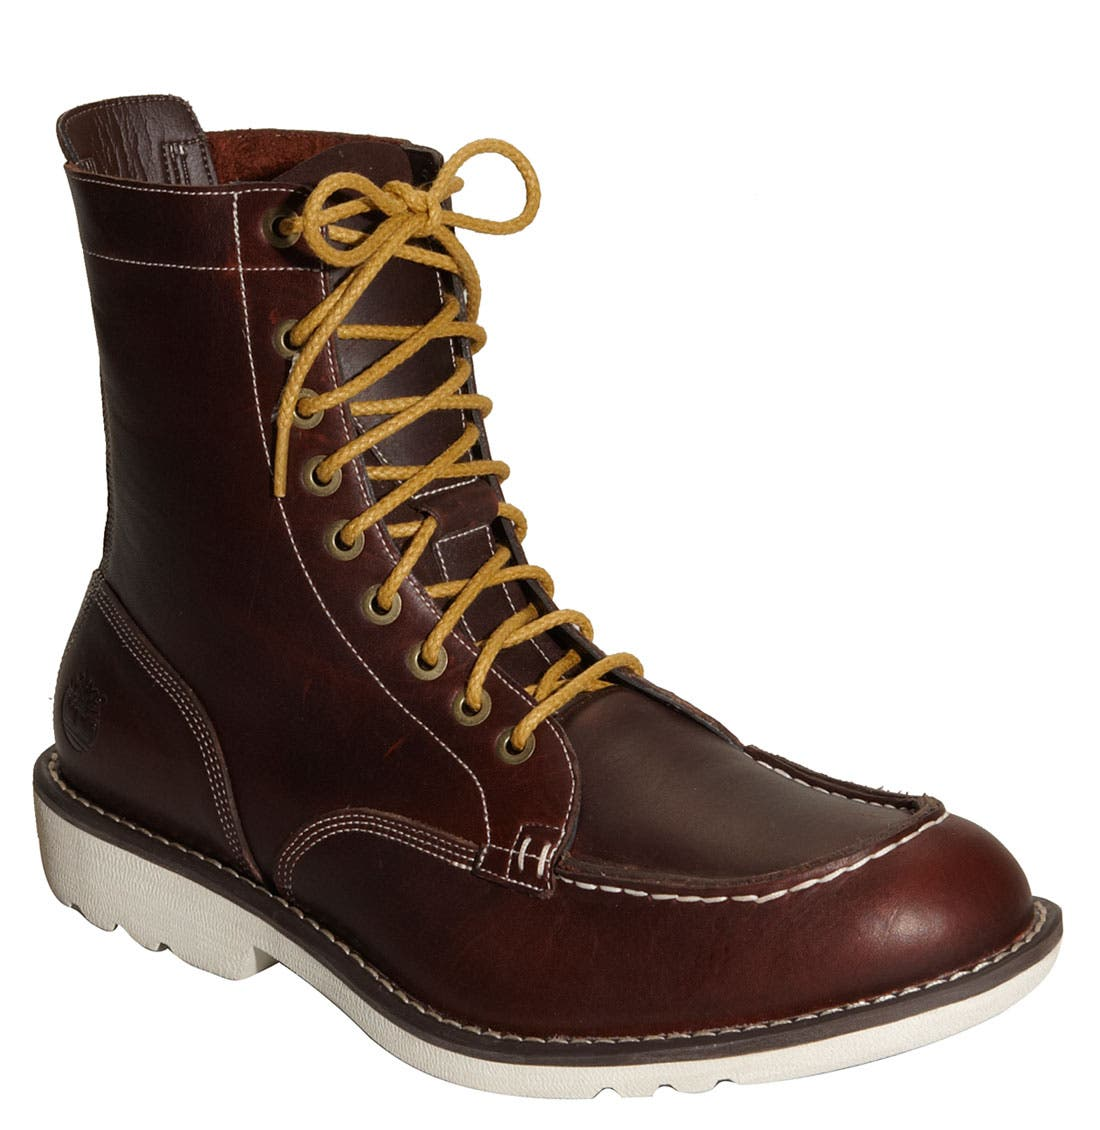 Alternate Image 1 Selected - TIMBERLAND EARTHKEEPER MOC TOE BOOT